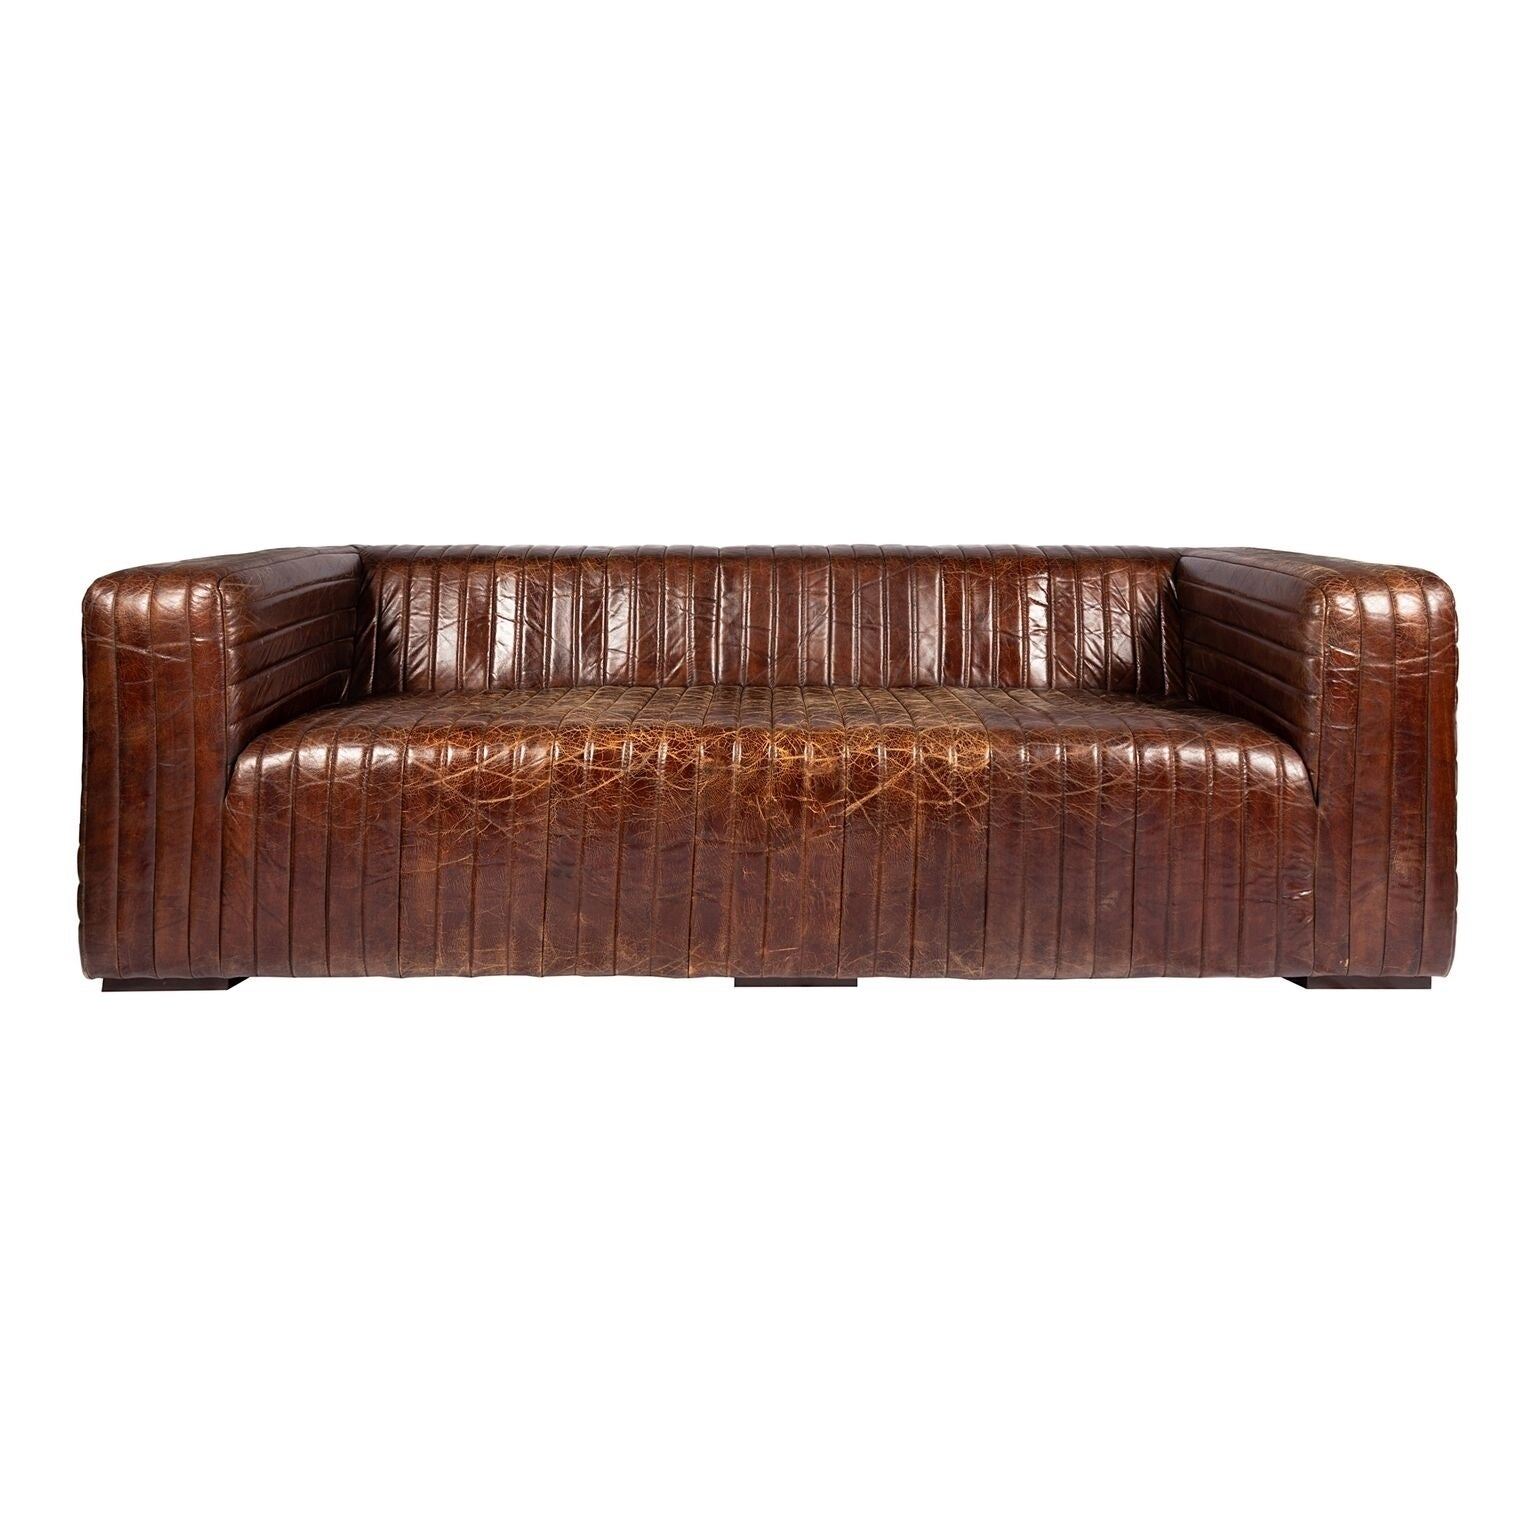 Shop Aurelle Home Tillow Brown Top Grain Rustic Leather Sofa - Free ...